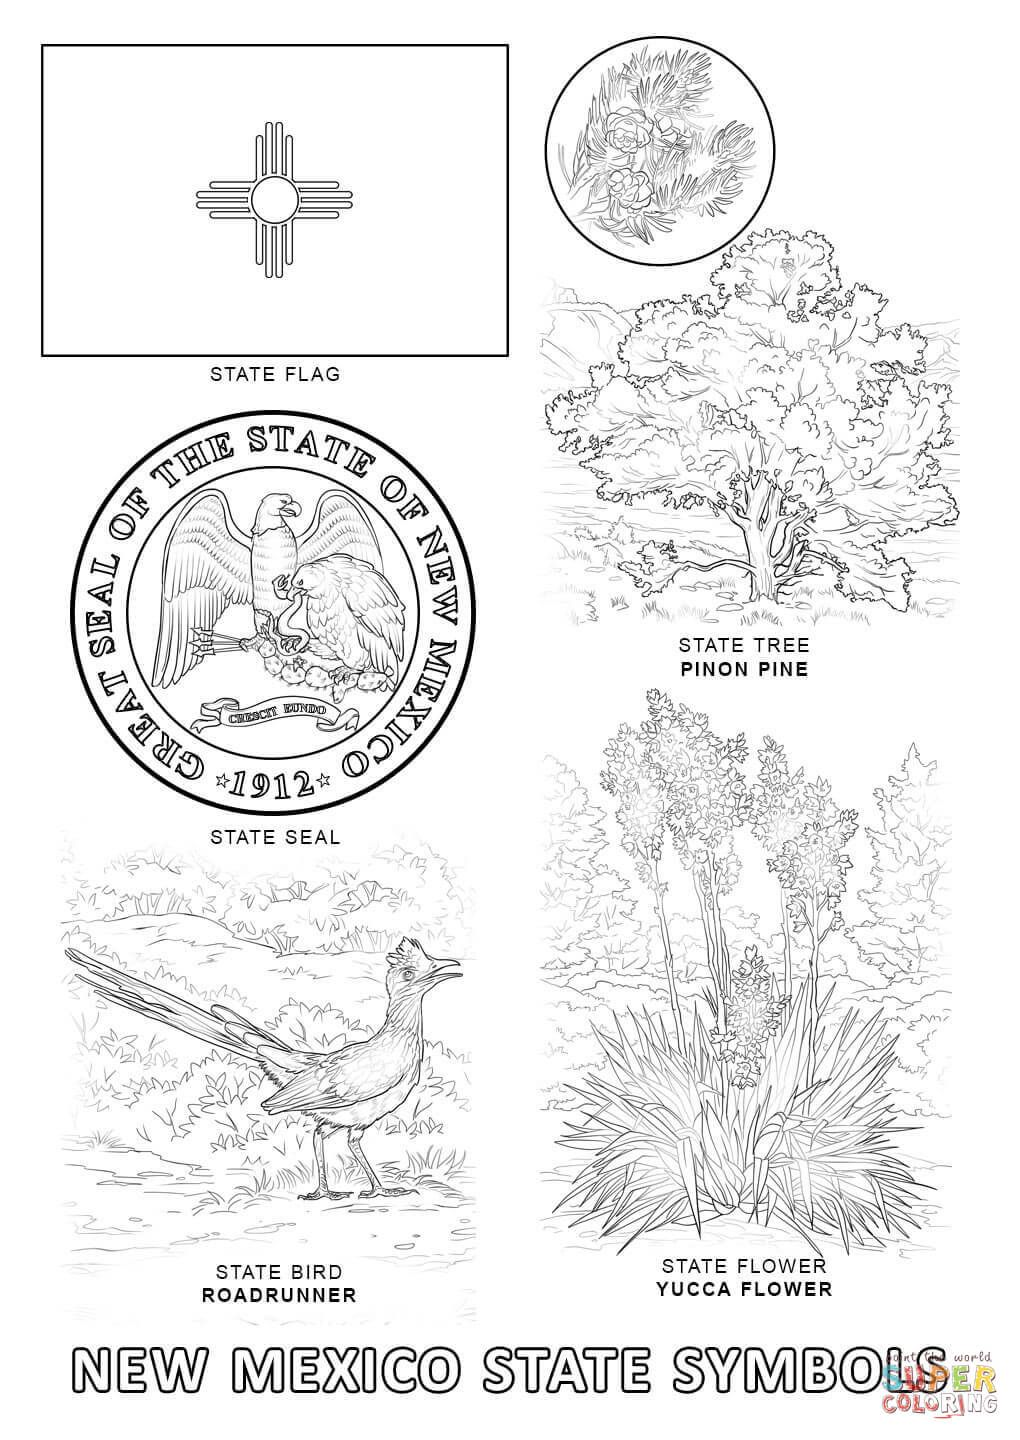 New Mexico State Symbols Super Coloring State Symbols Missouri State History Bird Coloring Pages